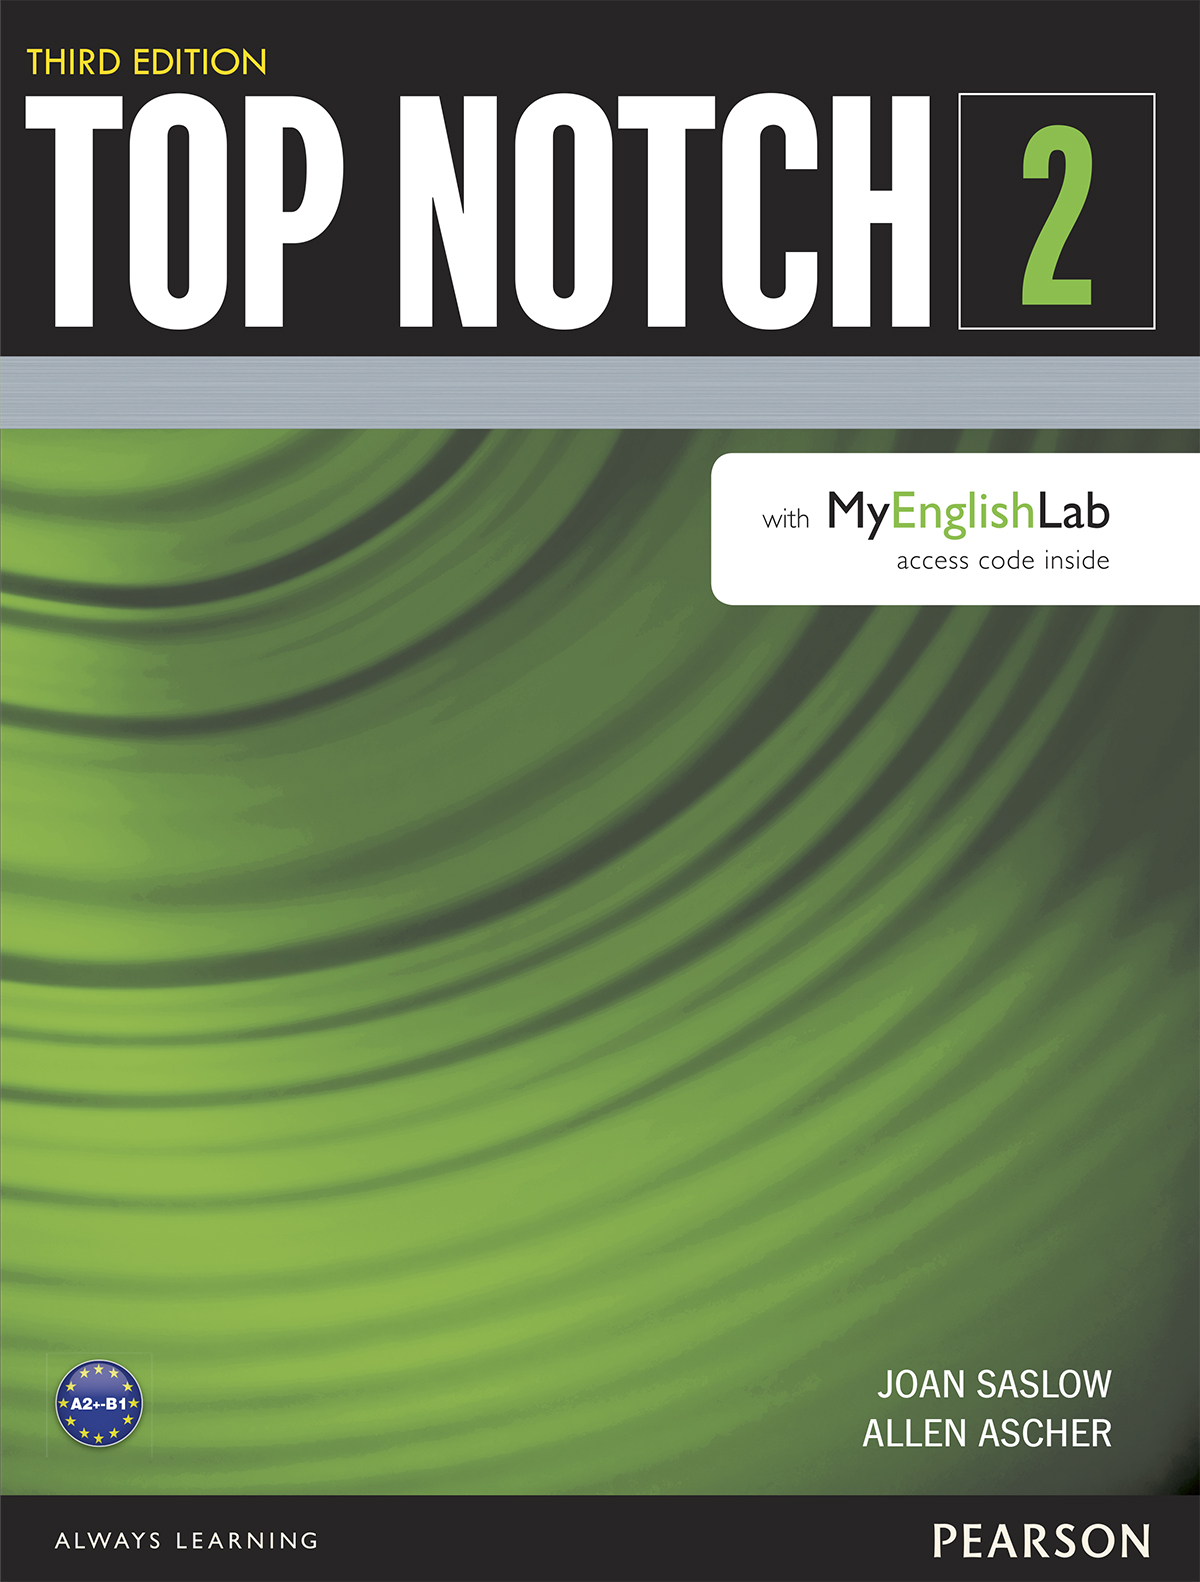 Top Notch Level 2 3/e Student eBook with MEL